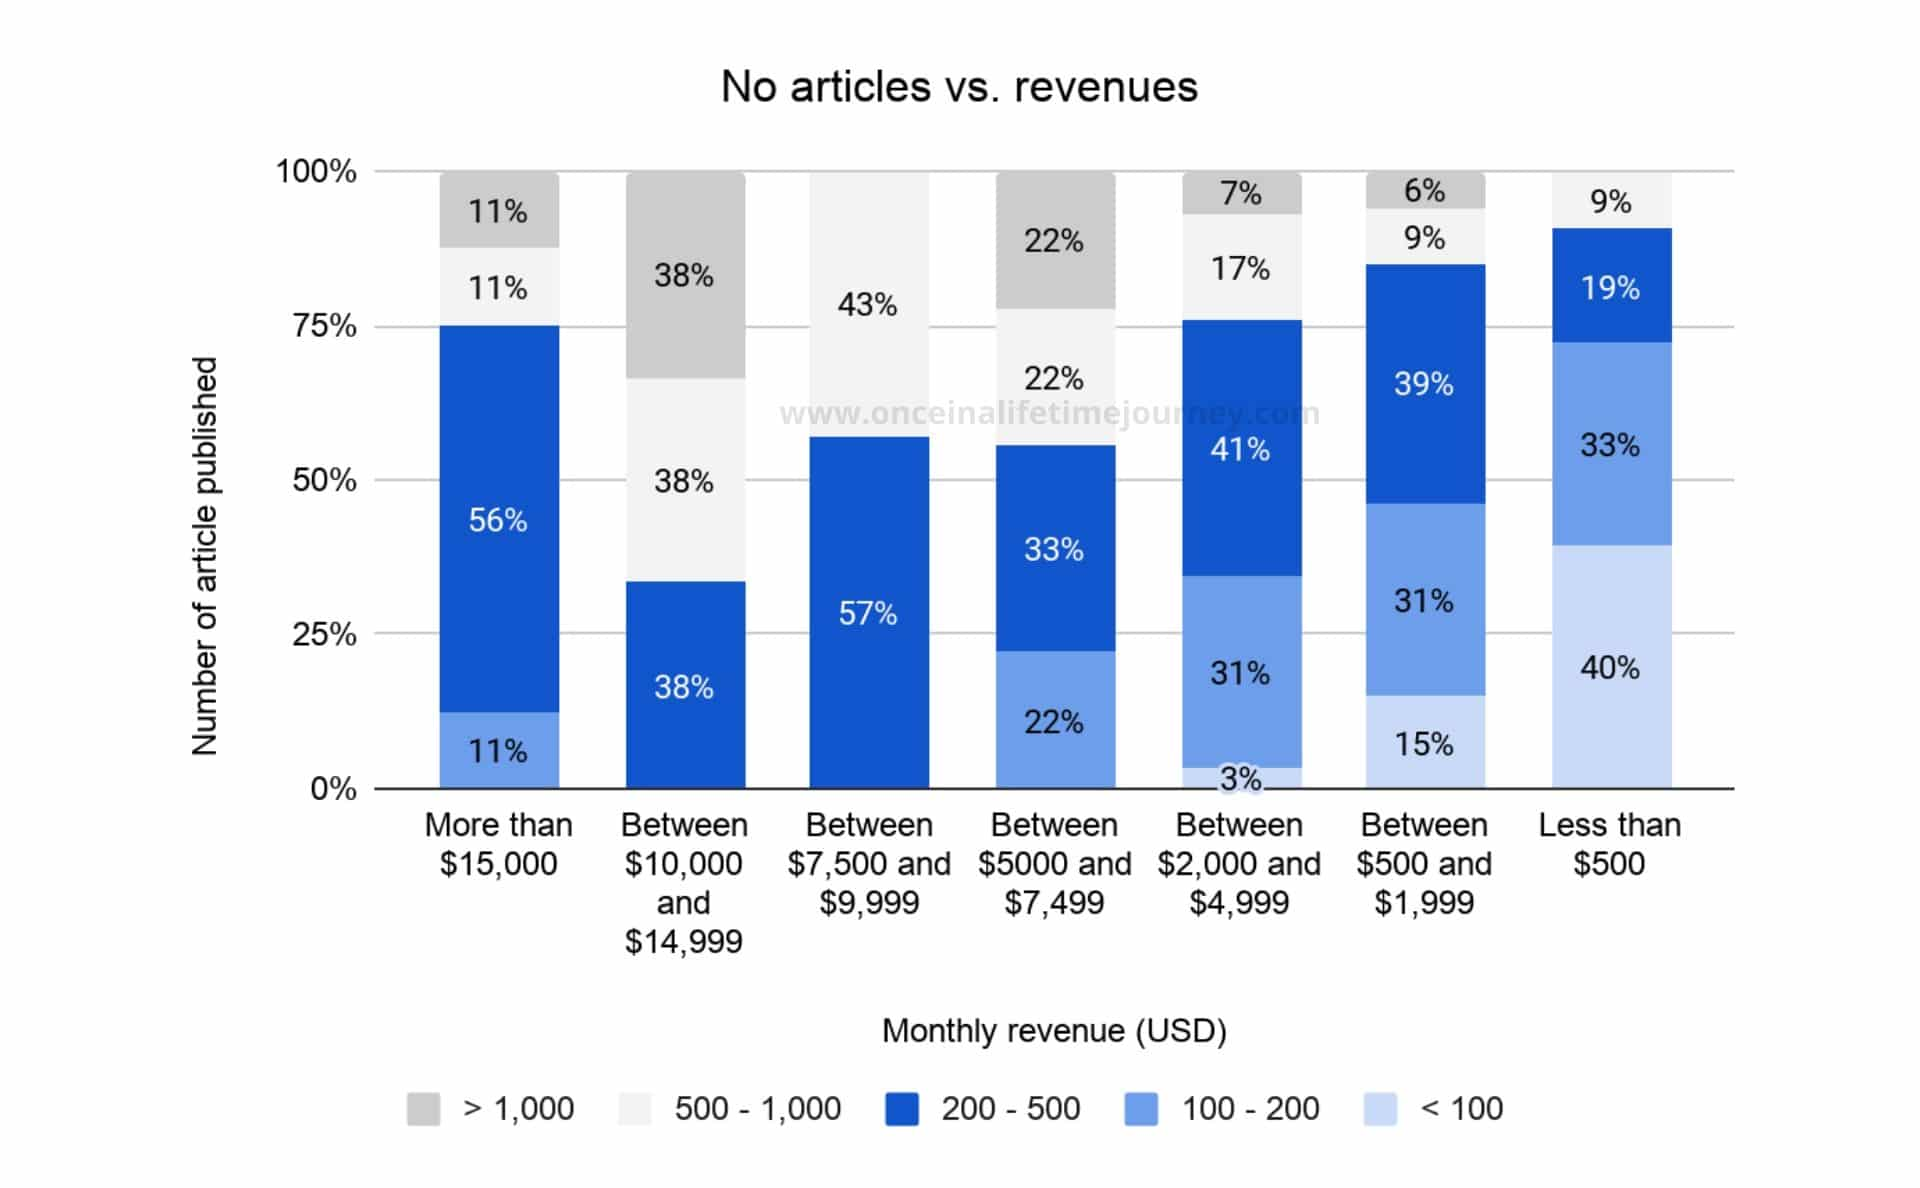 Correlation between no of articles written and revenues generated